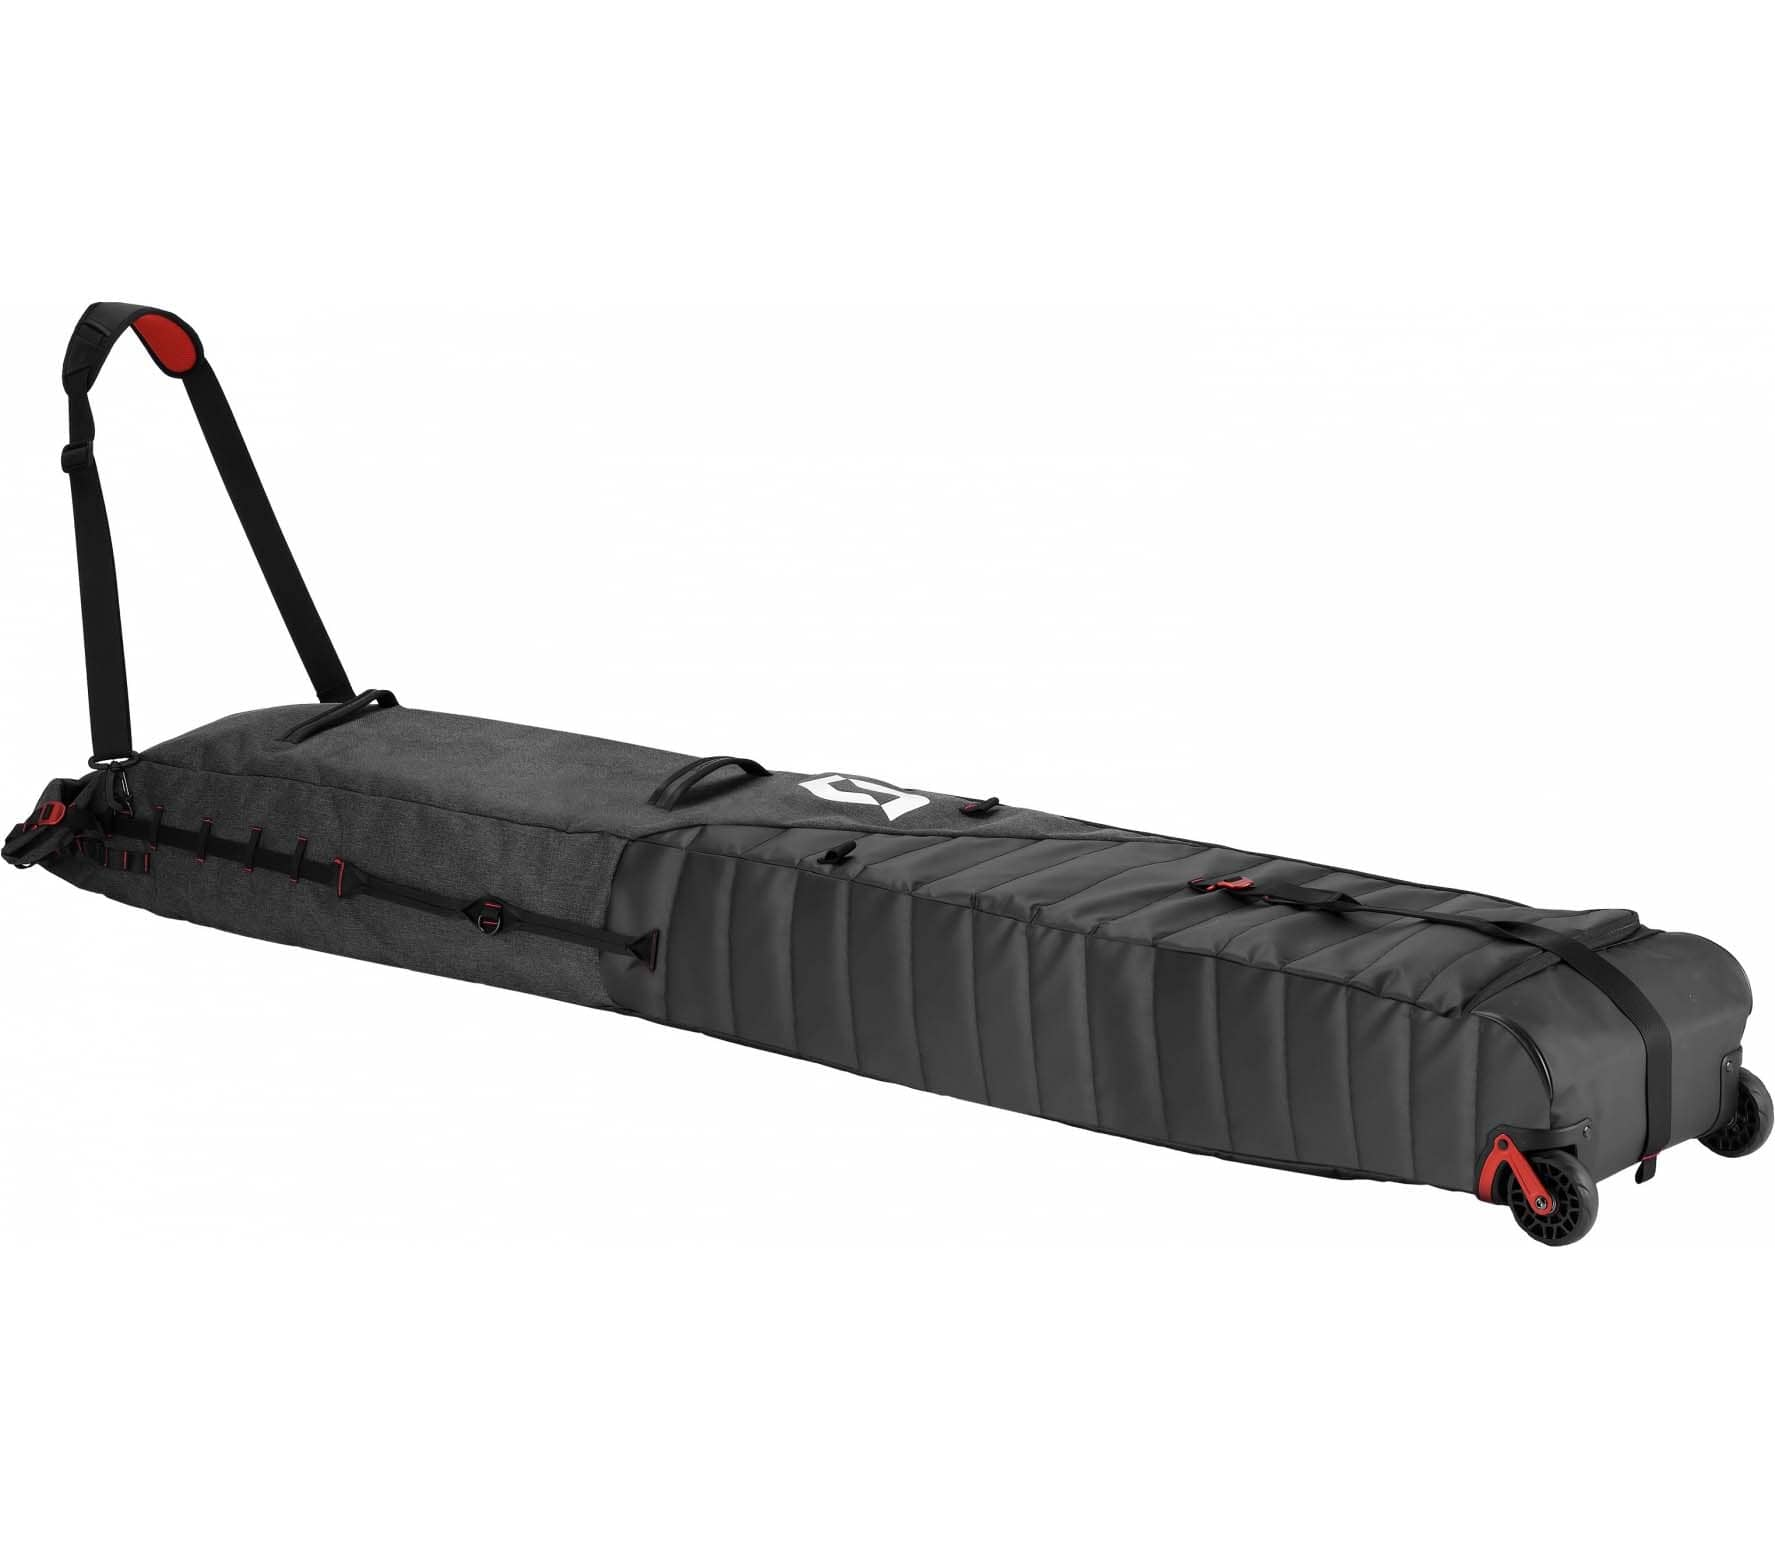 Scott - skis Wheel Premium skis bag (black)